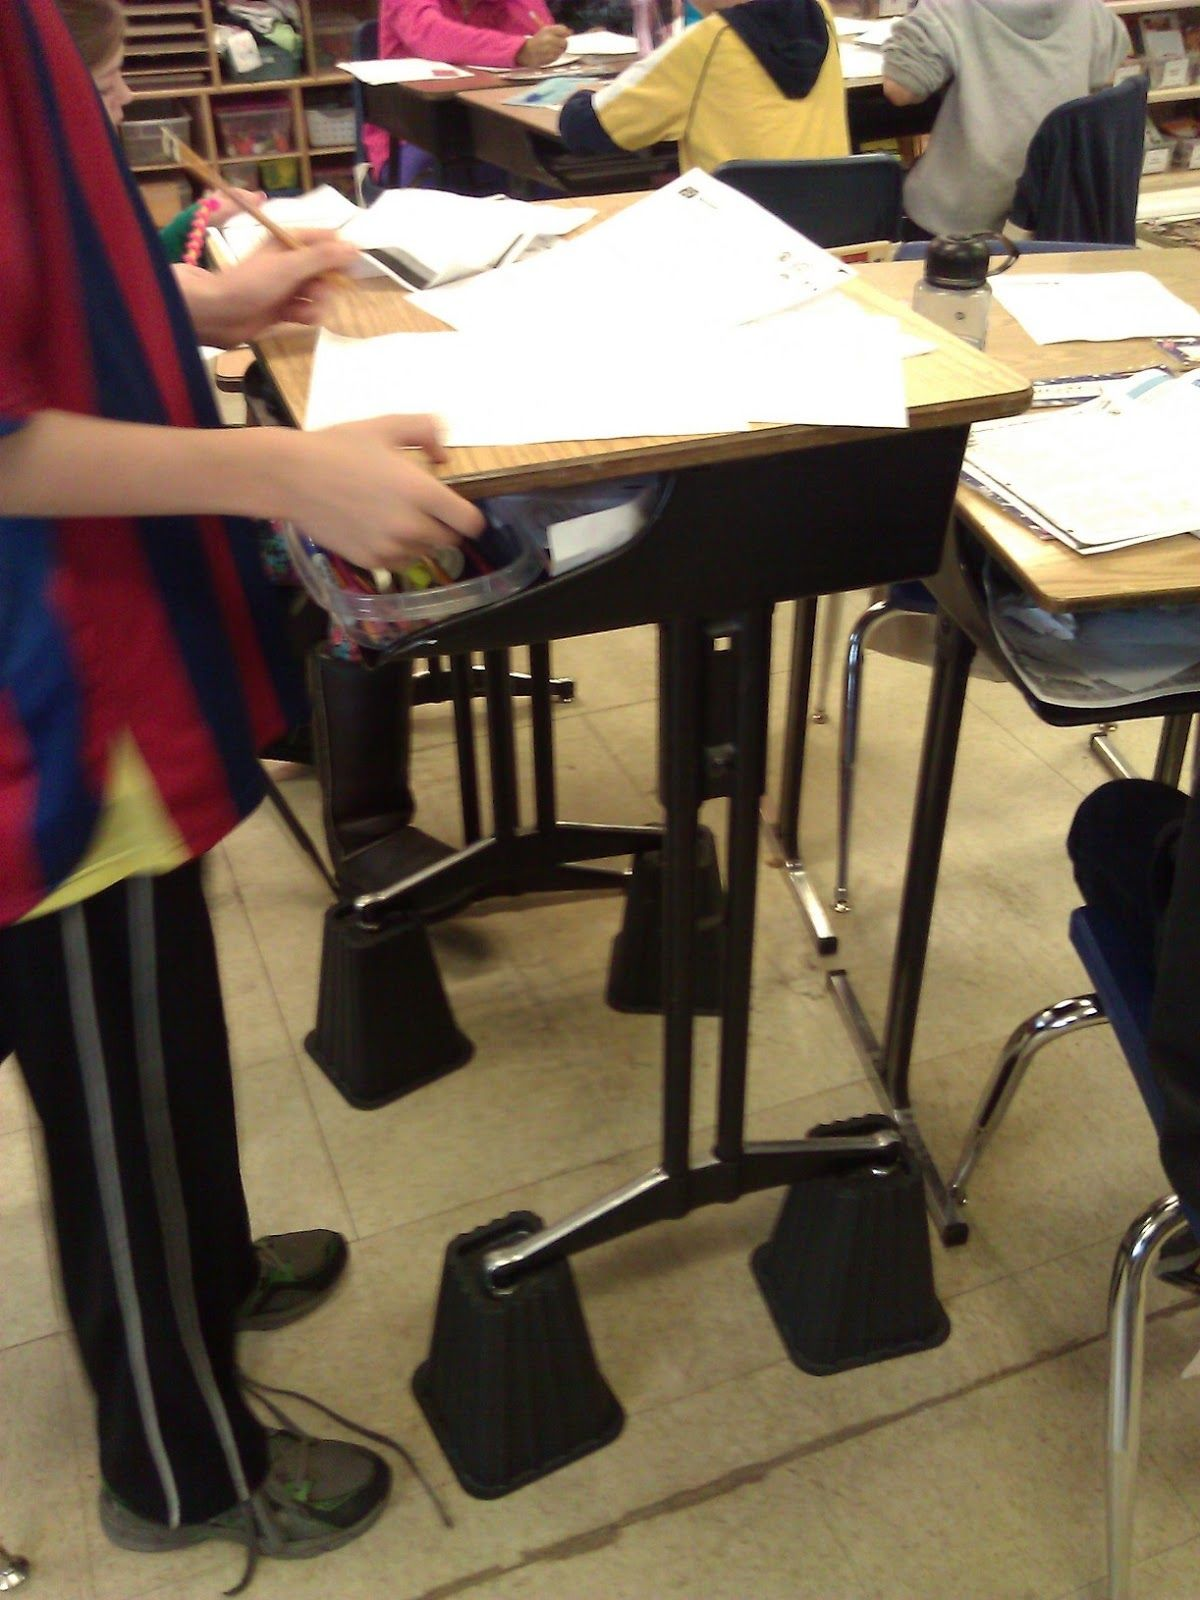 Extra tall bed risers - Organizing Chaos In The Classroom Use Bed Risers To Make A Standing Desk For Students